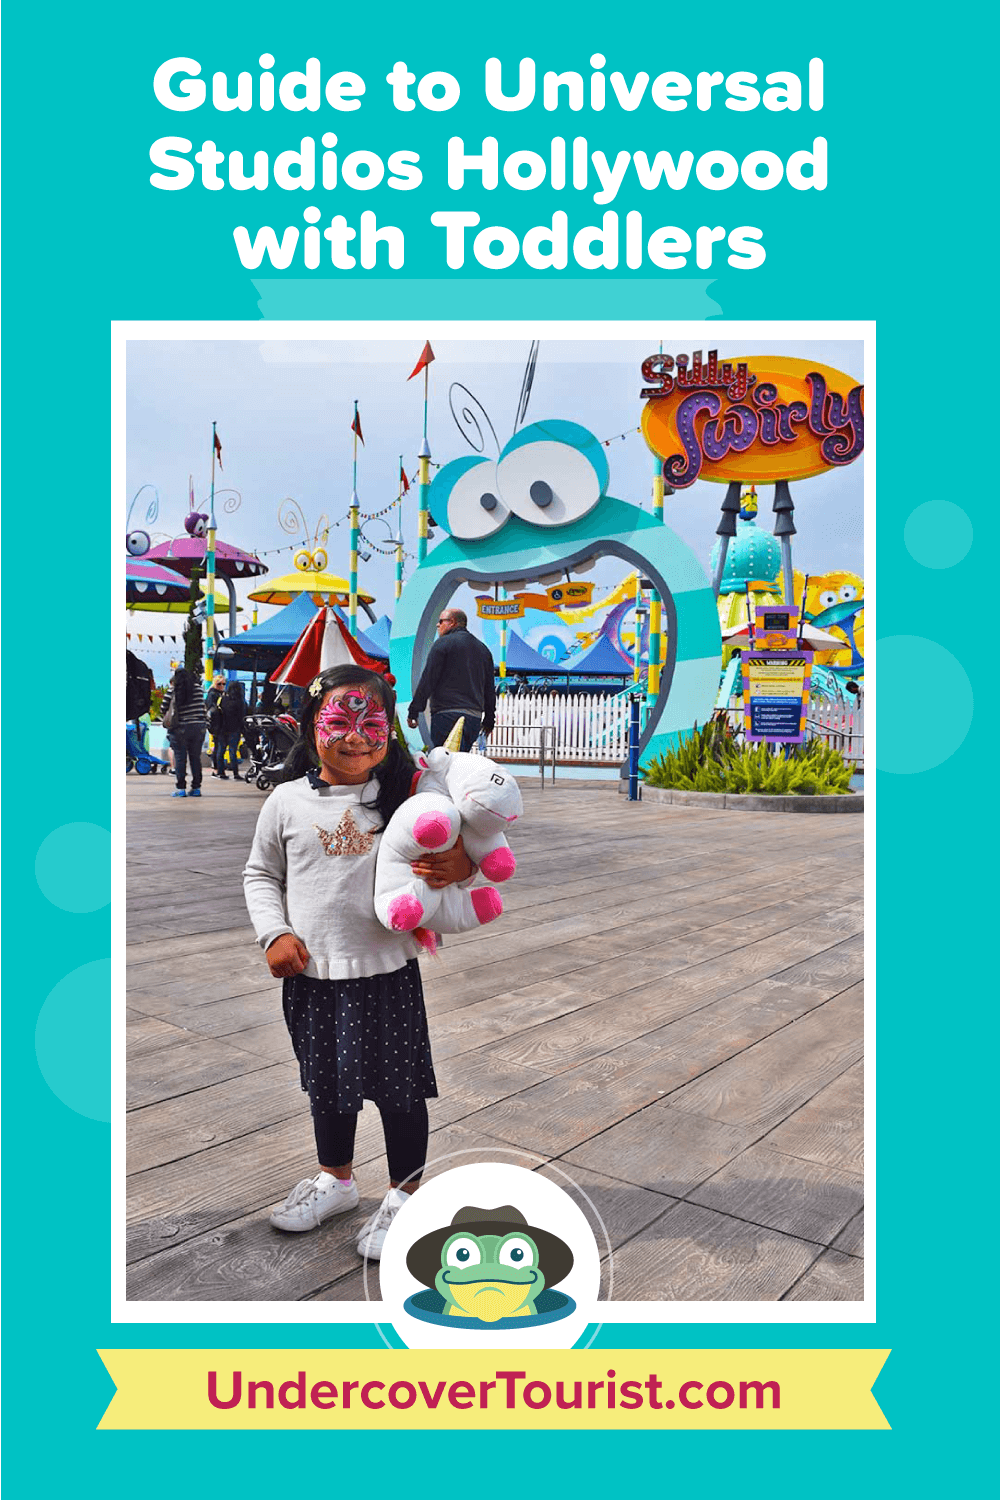 Guide to Universal Studios Hollywood for Toddlers - Pinterest